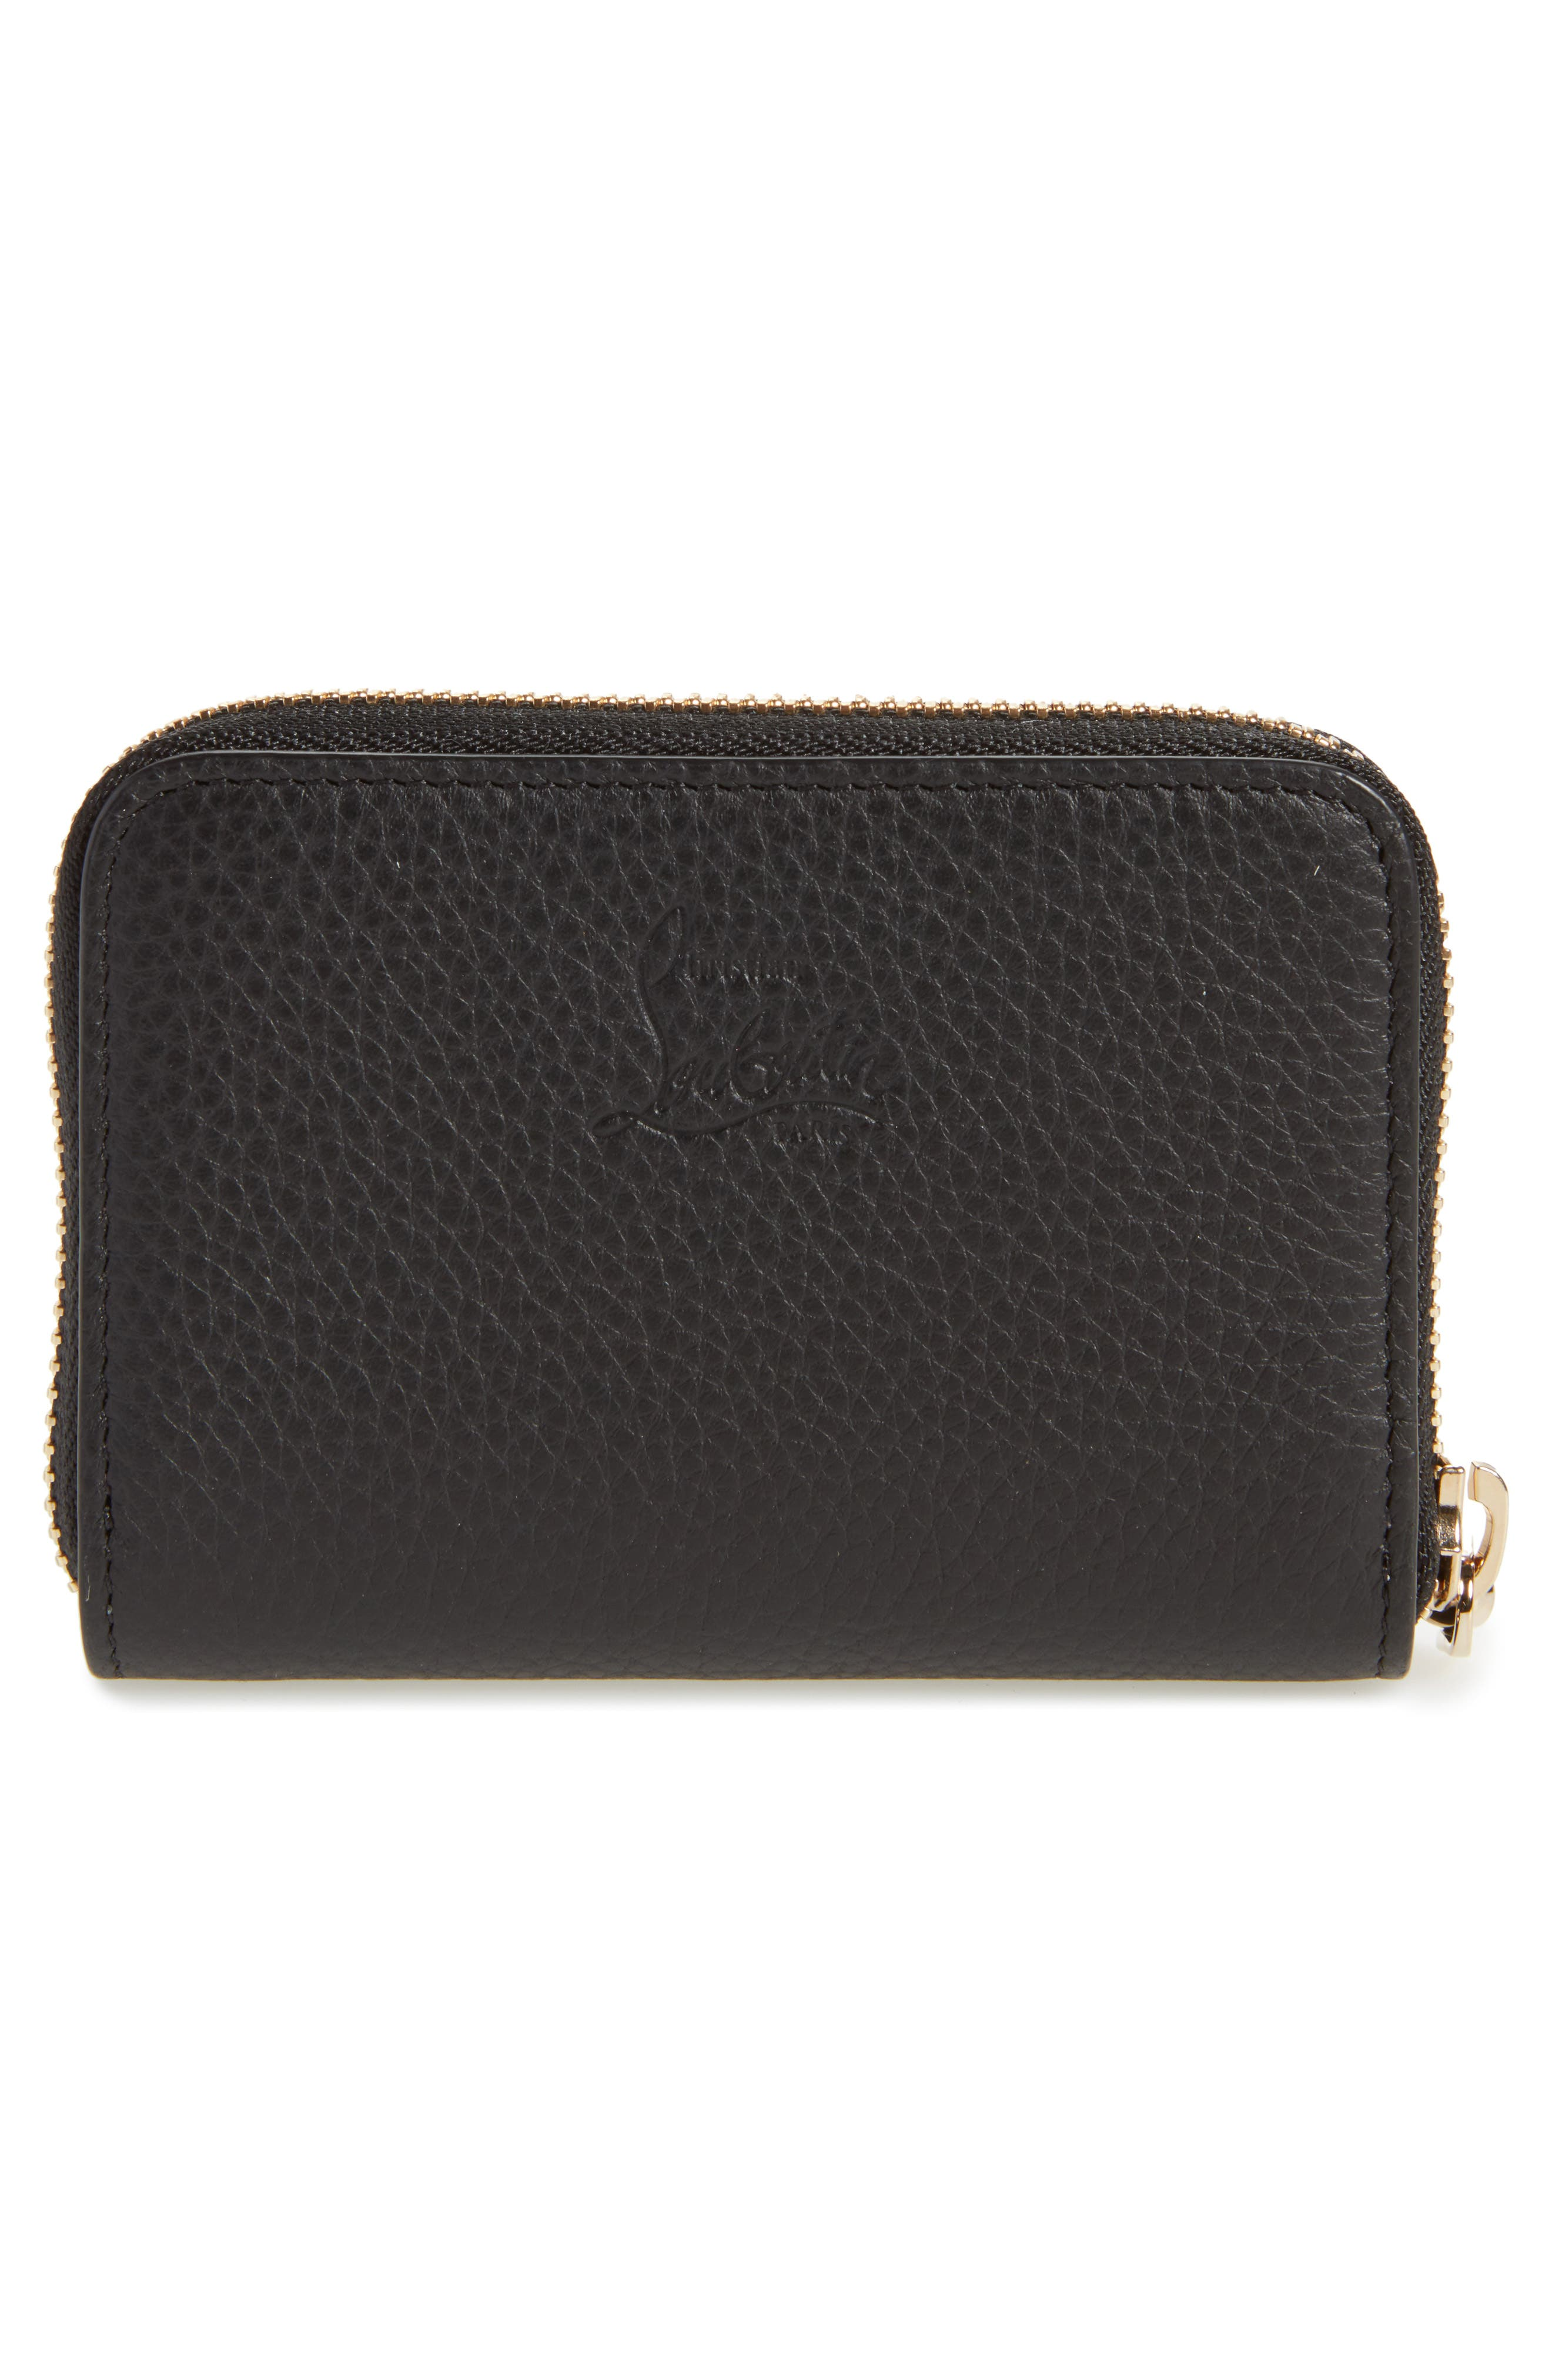 CHRISTIAN LOUBOUTIN, Panettone Leather Coin Purse, Alternate thumbnail 4, color, BLACK/ GOLD